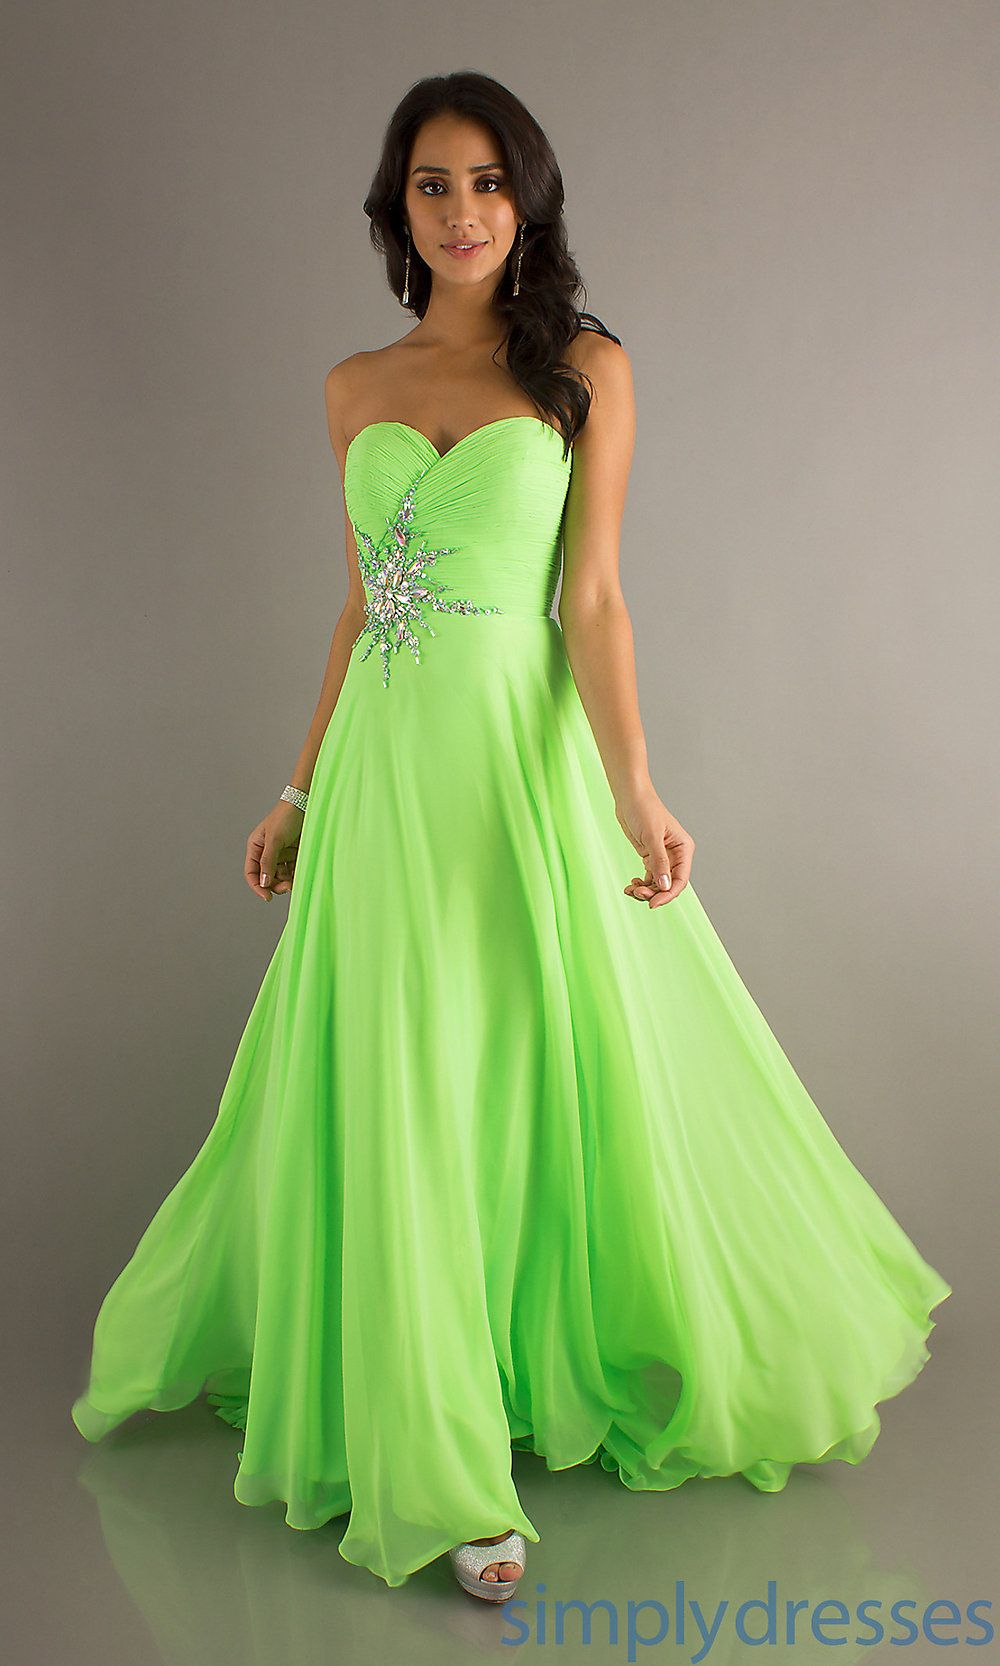 Dresses discount hurry up to buy top pinterest limes